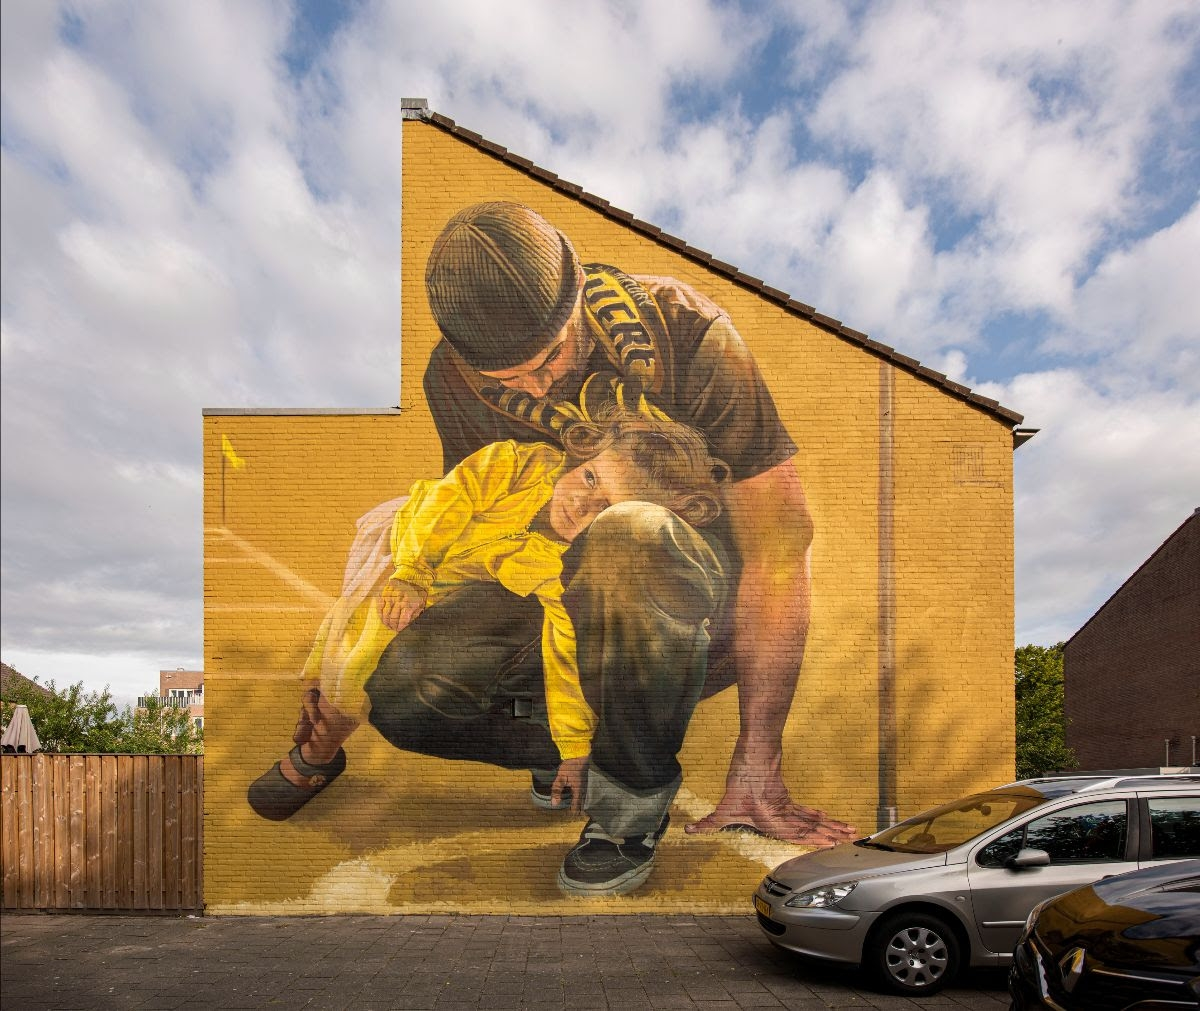 New wall by Case Maclaim in Breda, the Netherlands